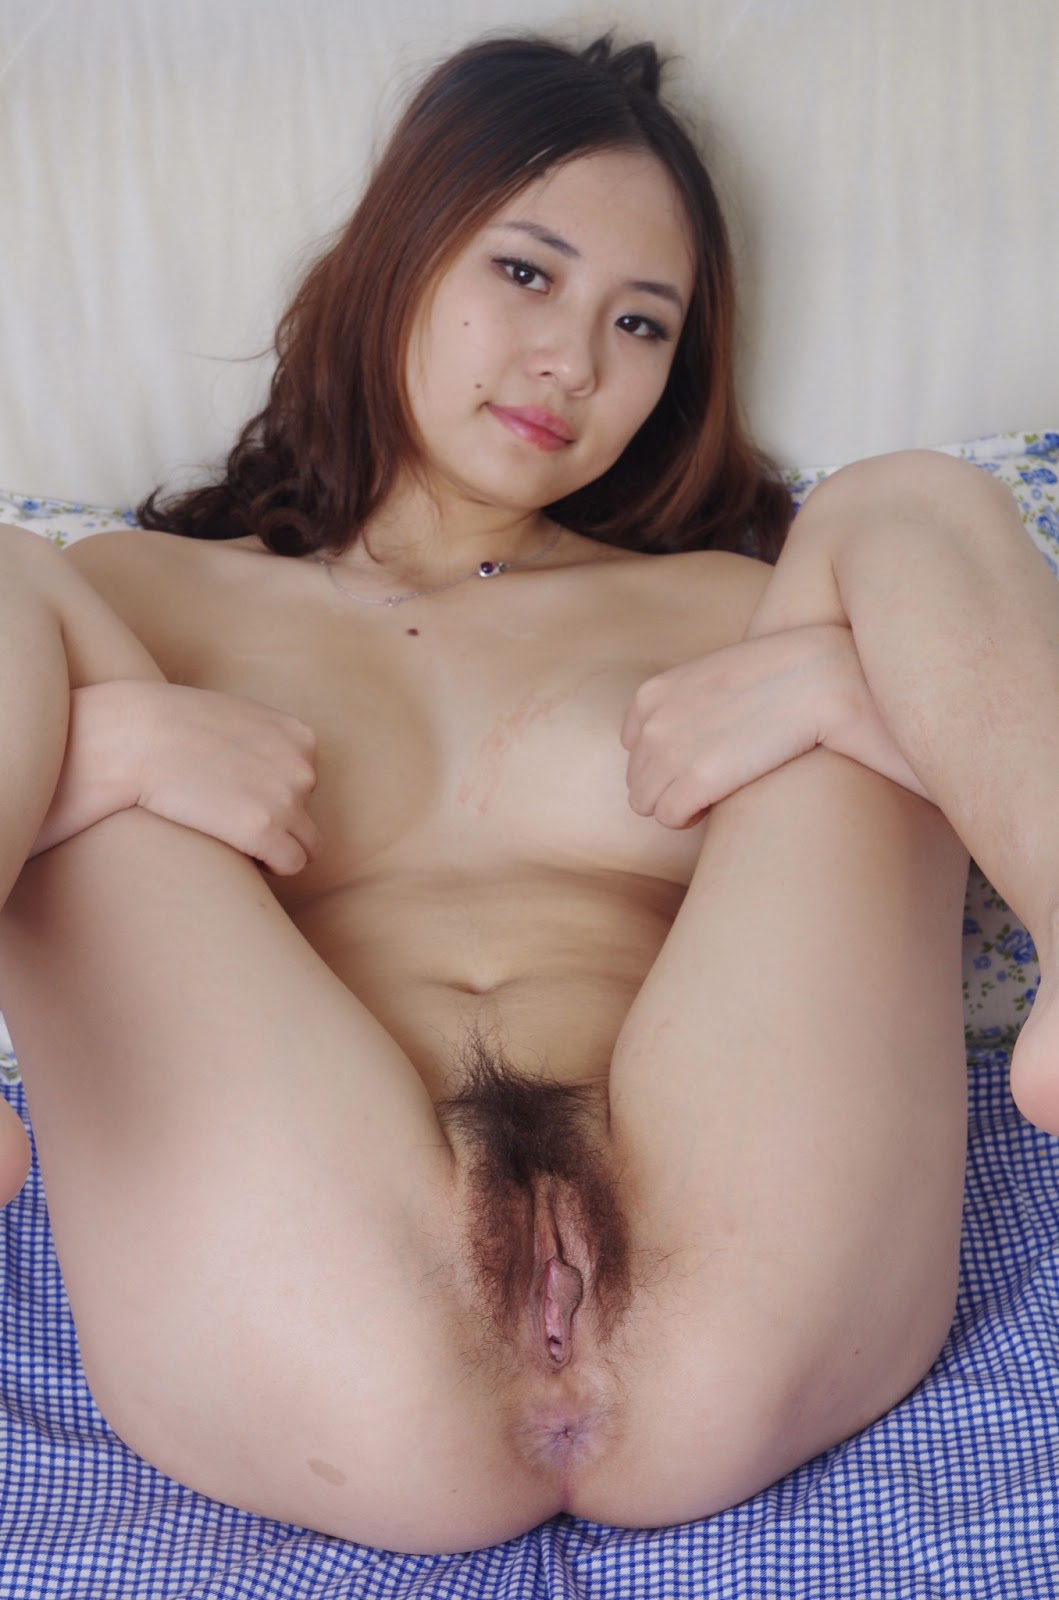 Asian girls sexy boobs for the